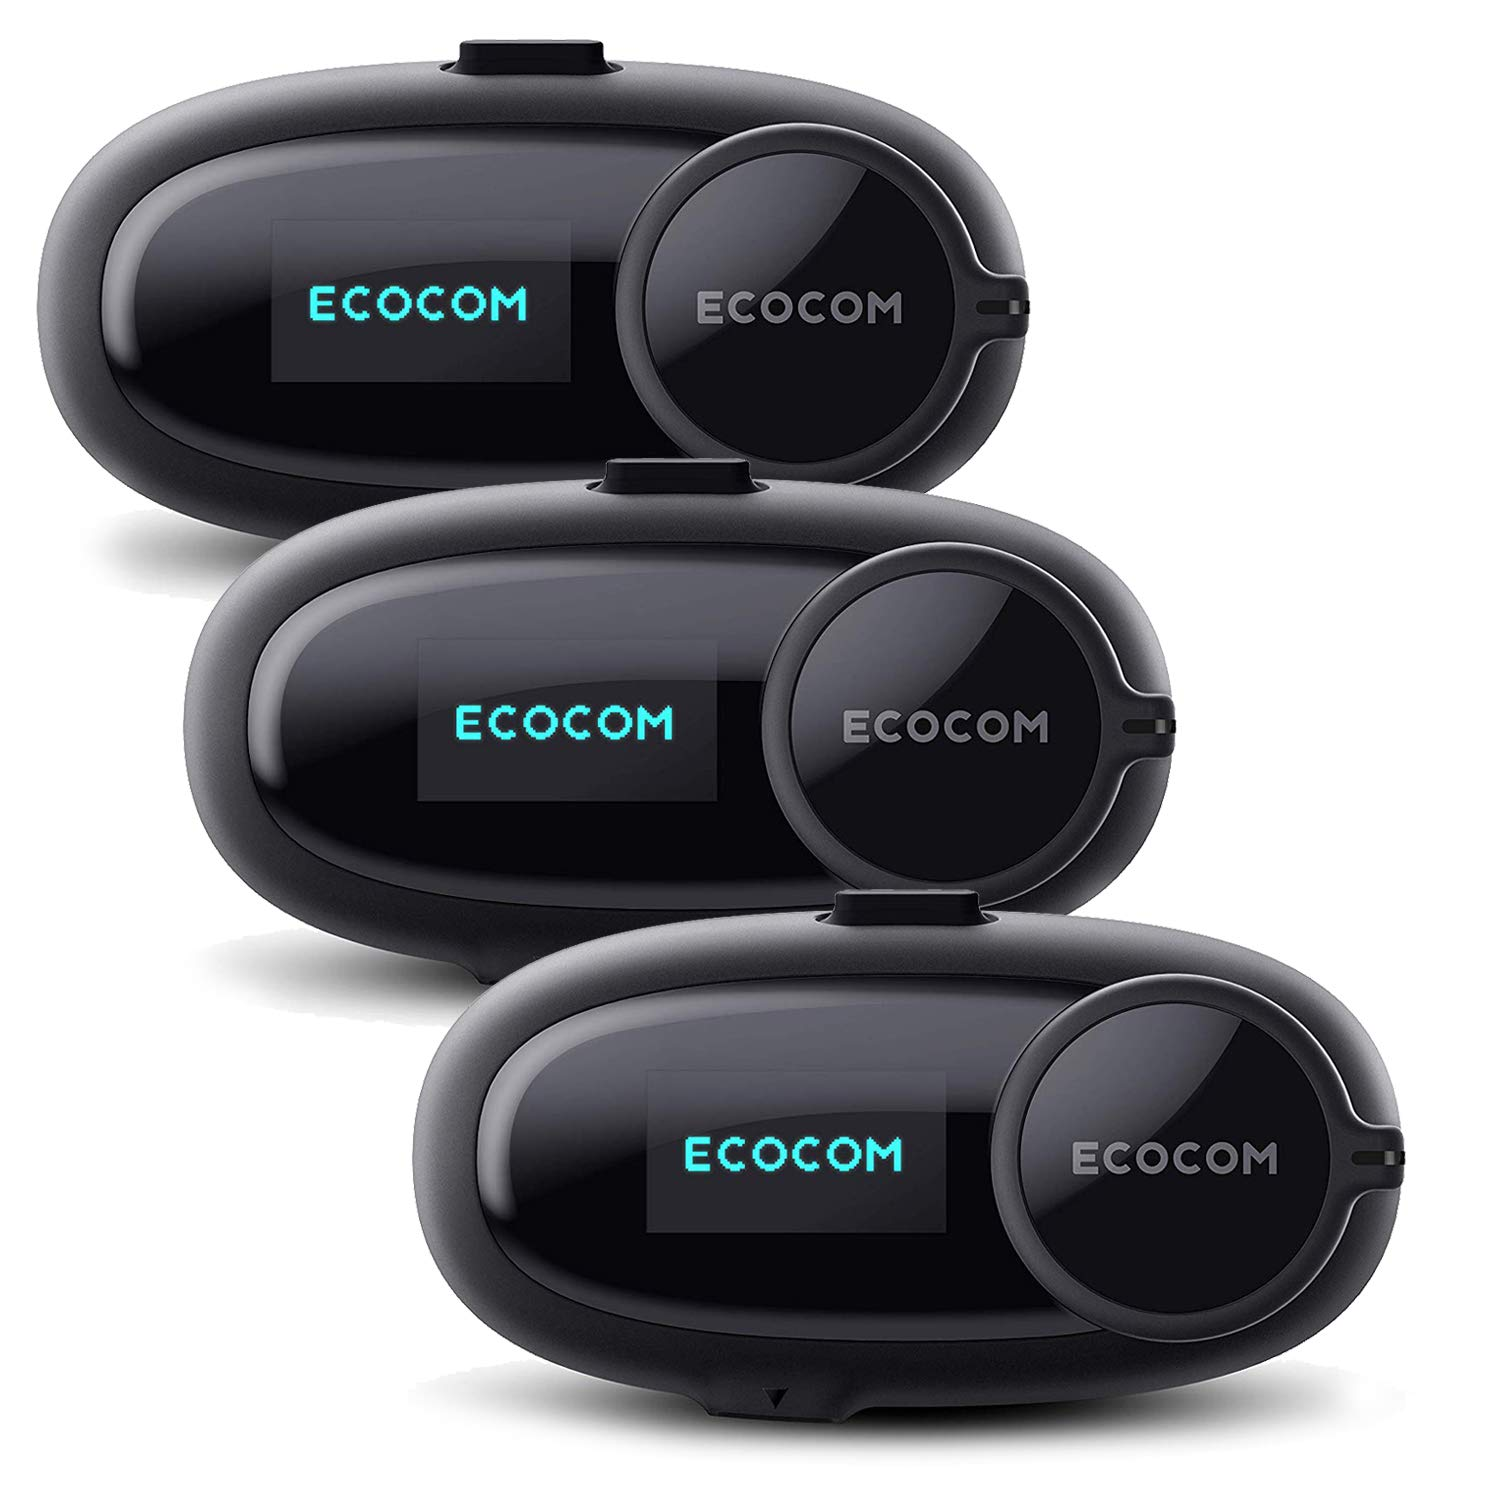 EcoCom Motorcycle Helmet Bluetooth Intercom Communication System Headset (Talk Time 8hrs/Jog Dial/1Km Intercom Range/Noise Control/Crystal Clear Sound/FM Radio/Voice Prom) - 3 Pack